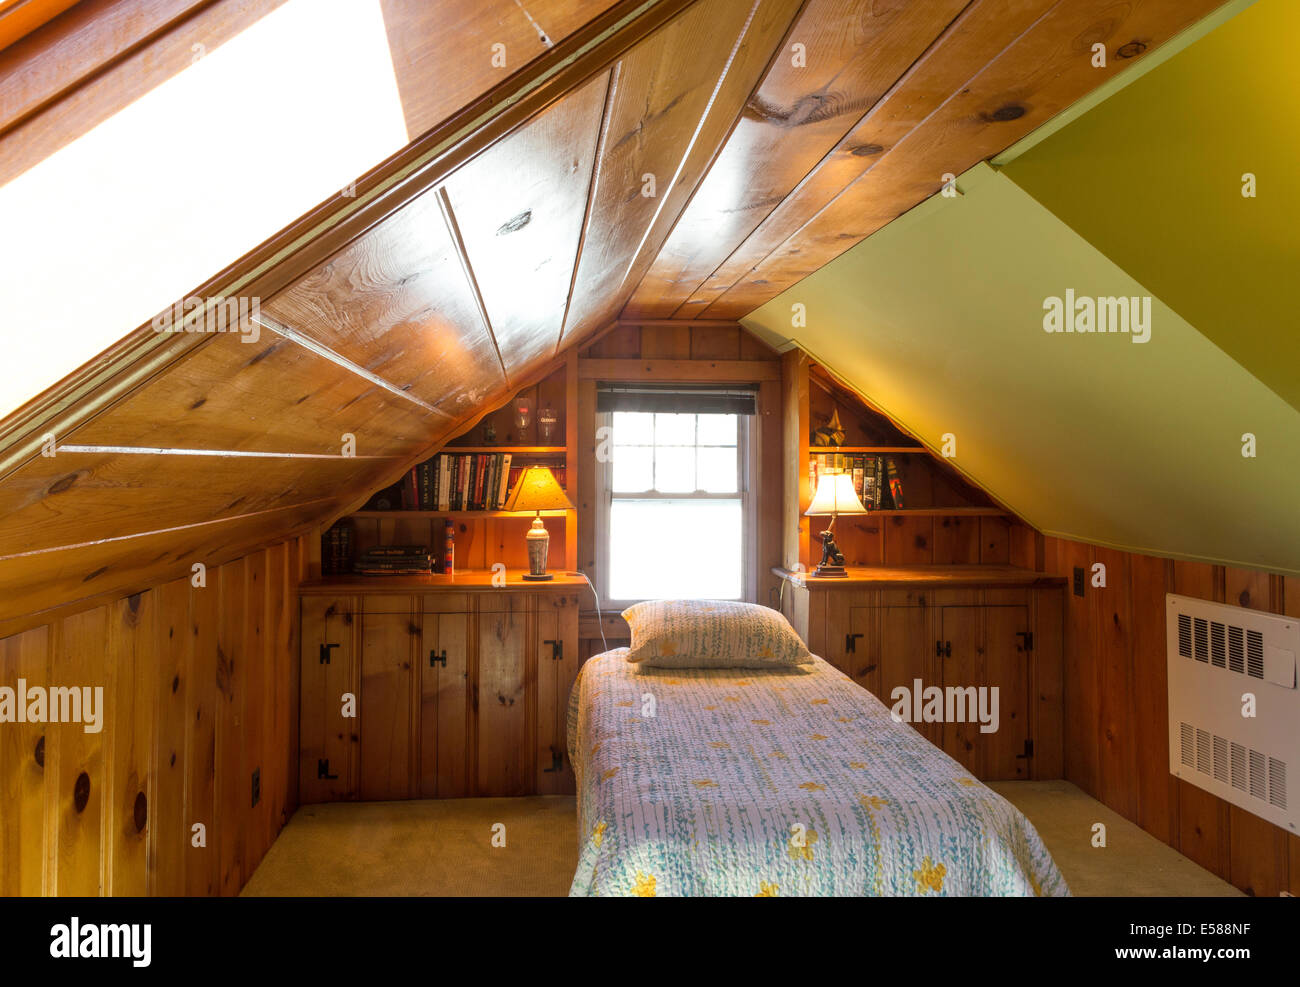 Wood Paneled Attic Bedroom with Slanted Ceiling, Single Bed Stock ...